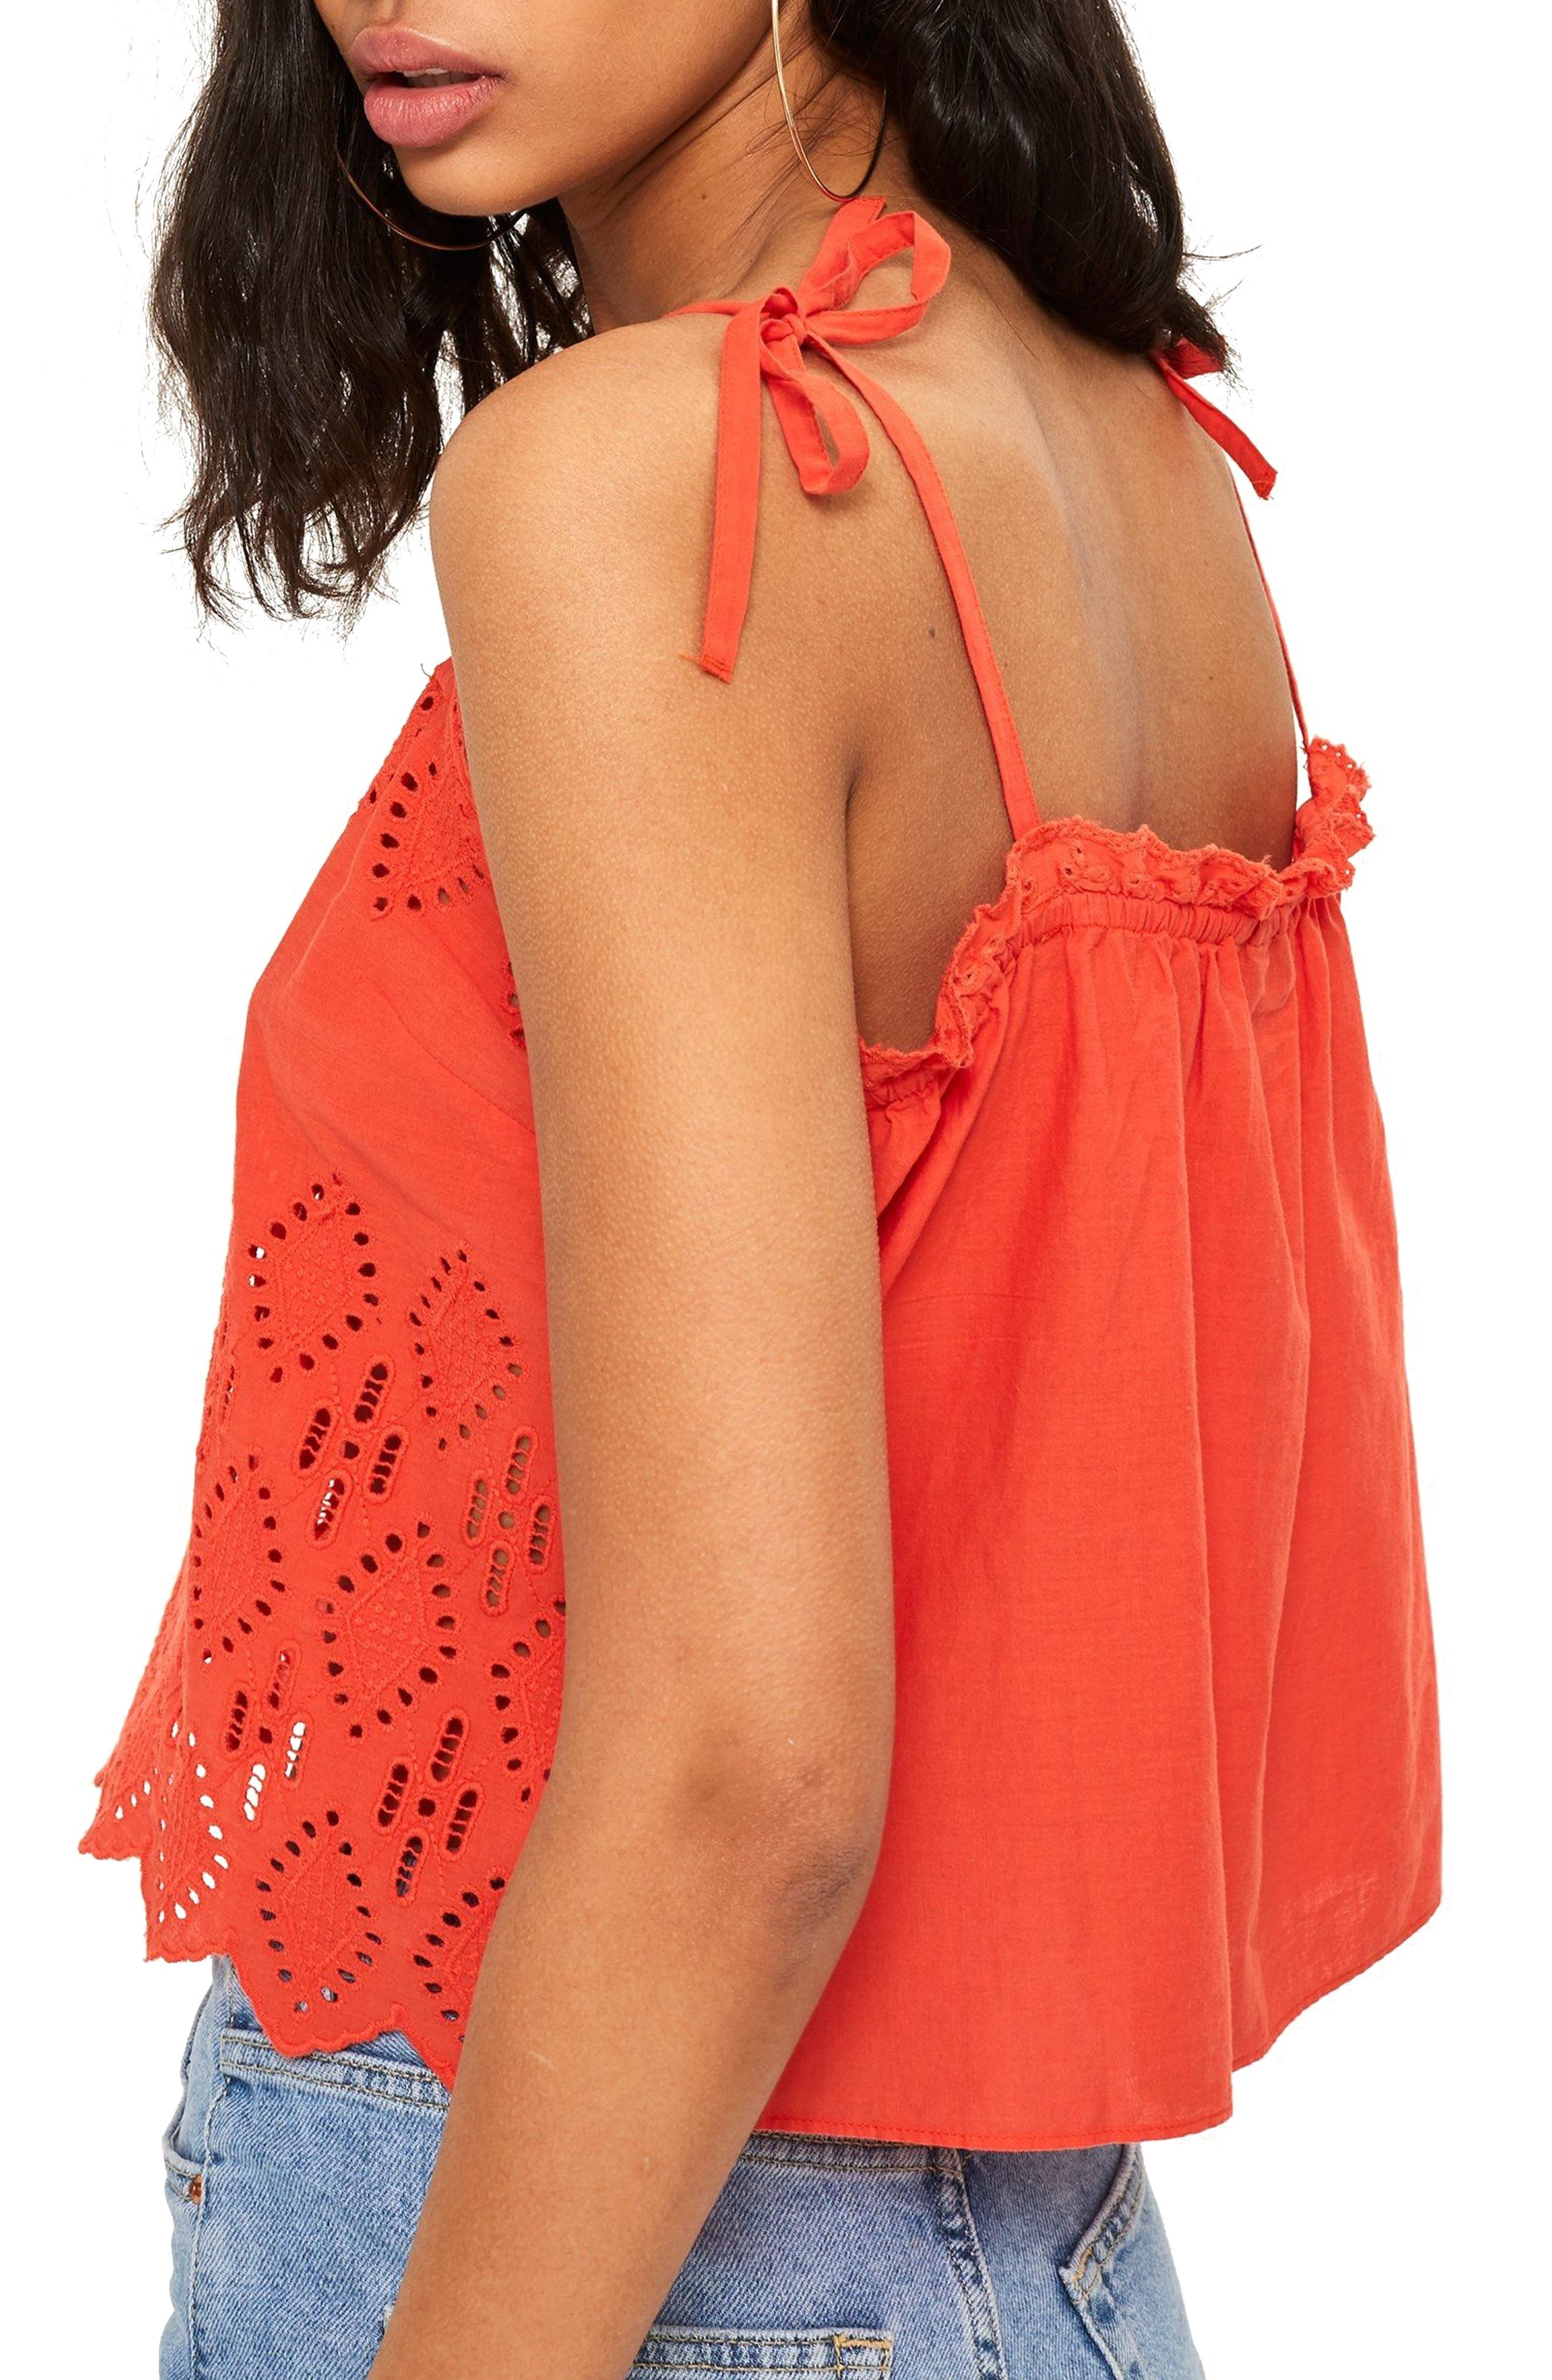 Broderie Camisole Top,                             Alternate thumbnail 6, color,